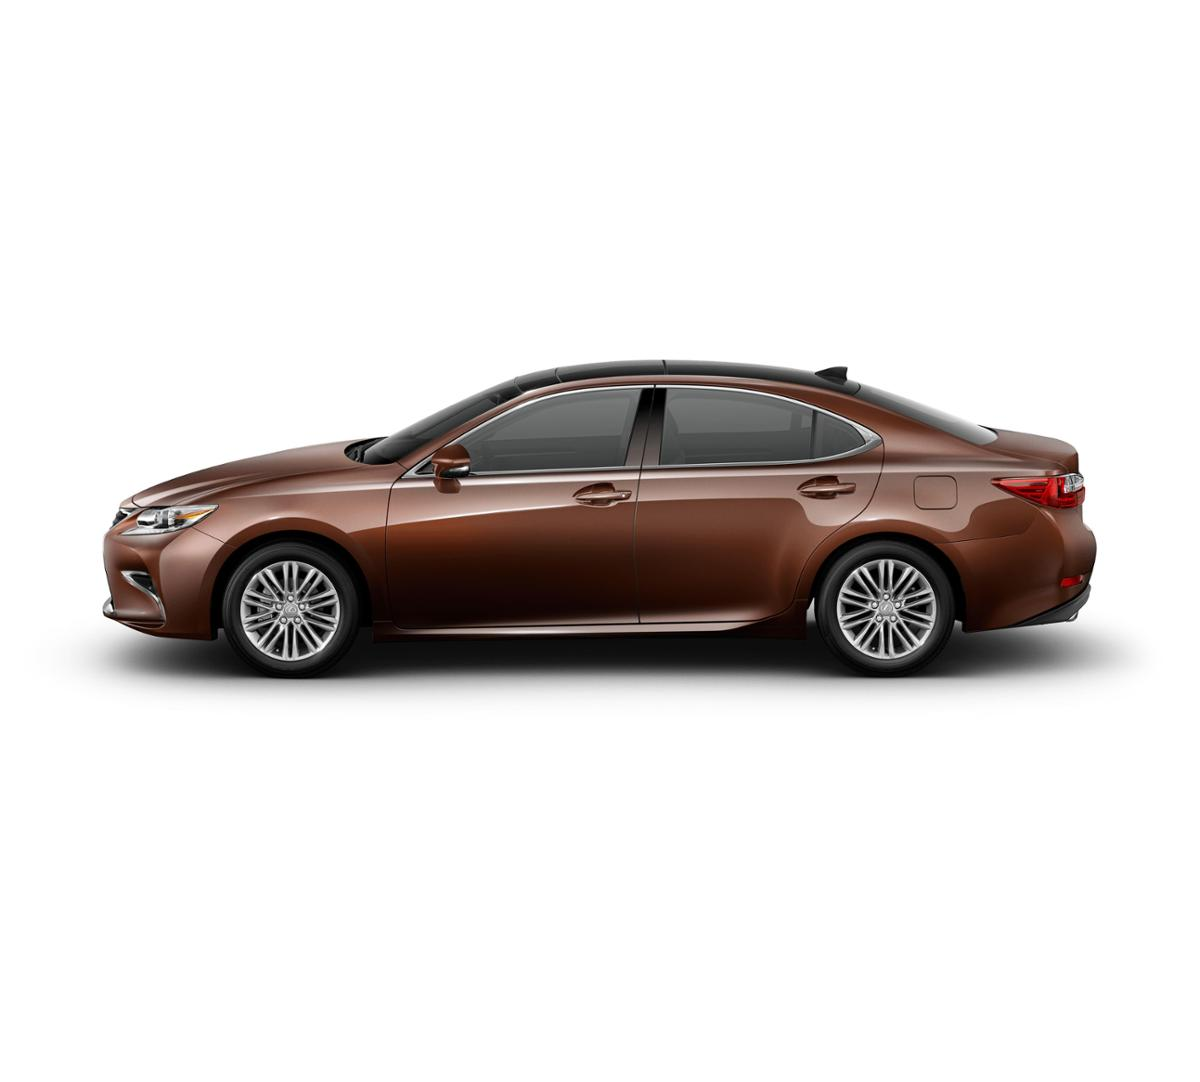 2018 Lexus ES 350 Vehicle Photo in Las Vegas, NV 89146